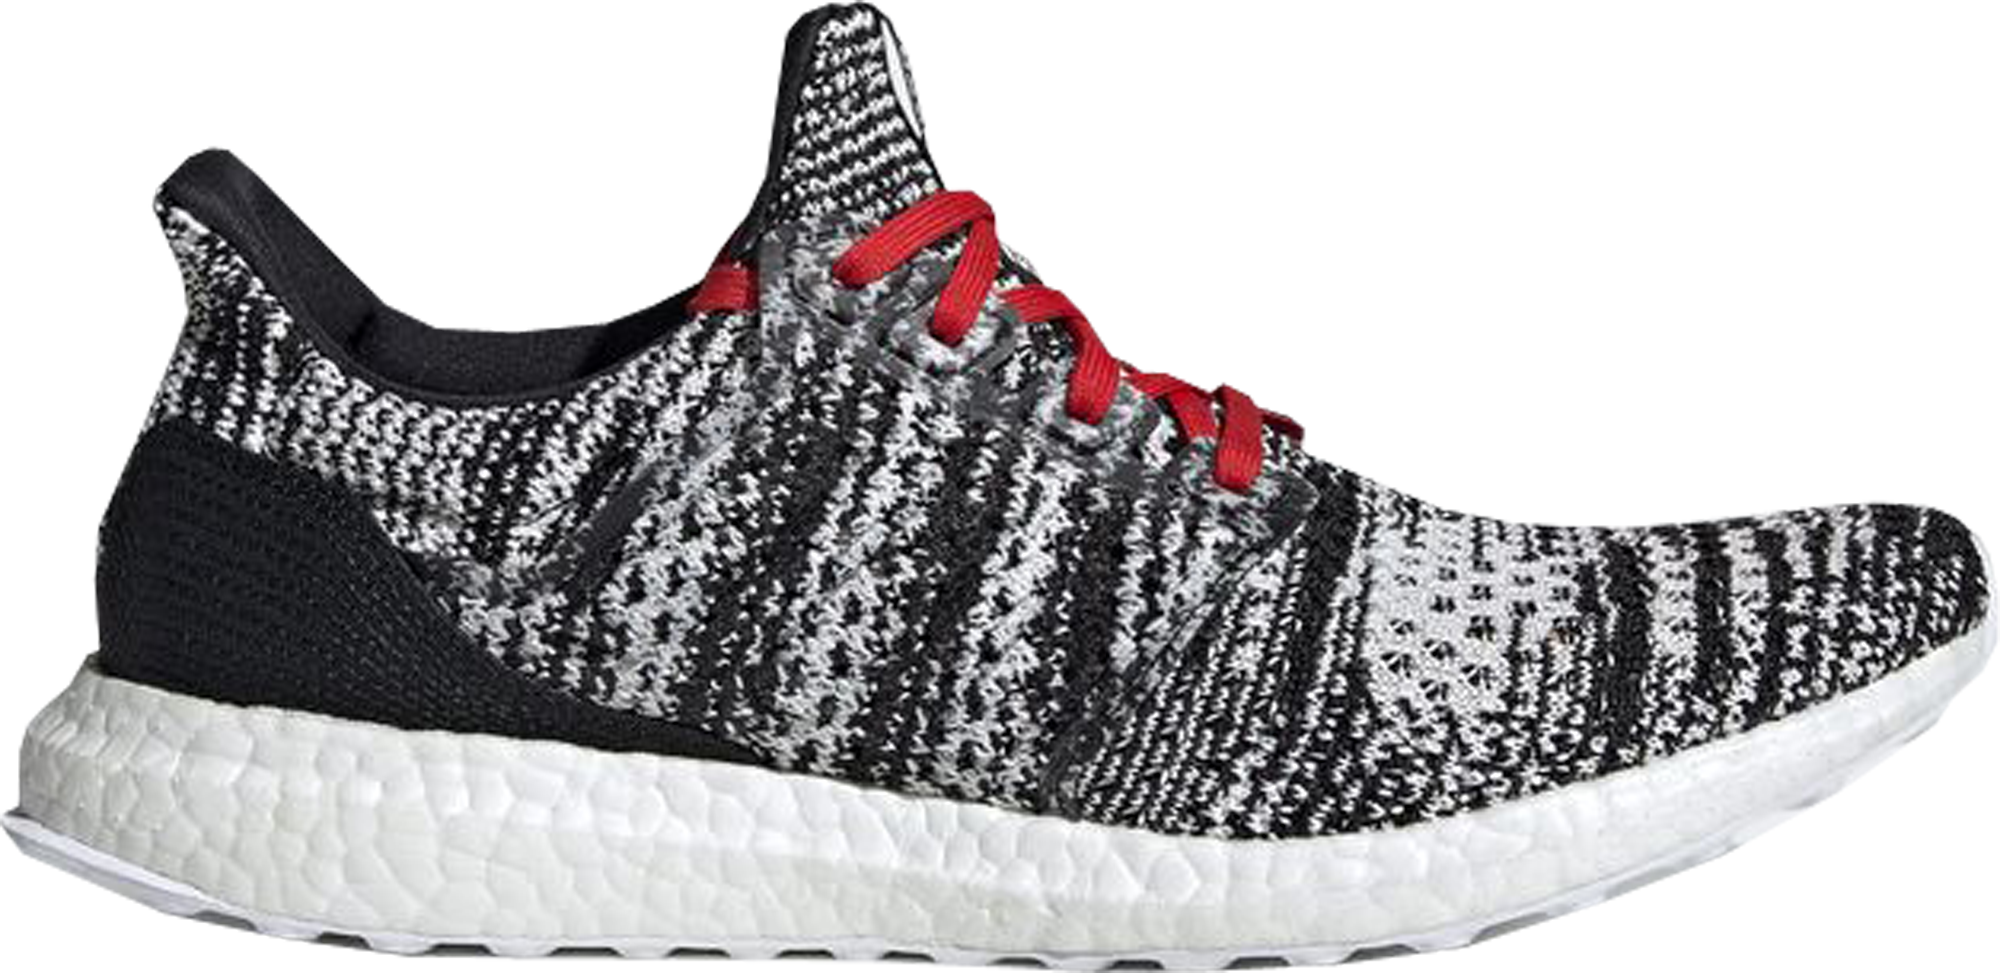 adidas Ultra Boost Clima Missoni Black